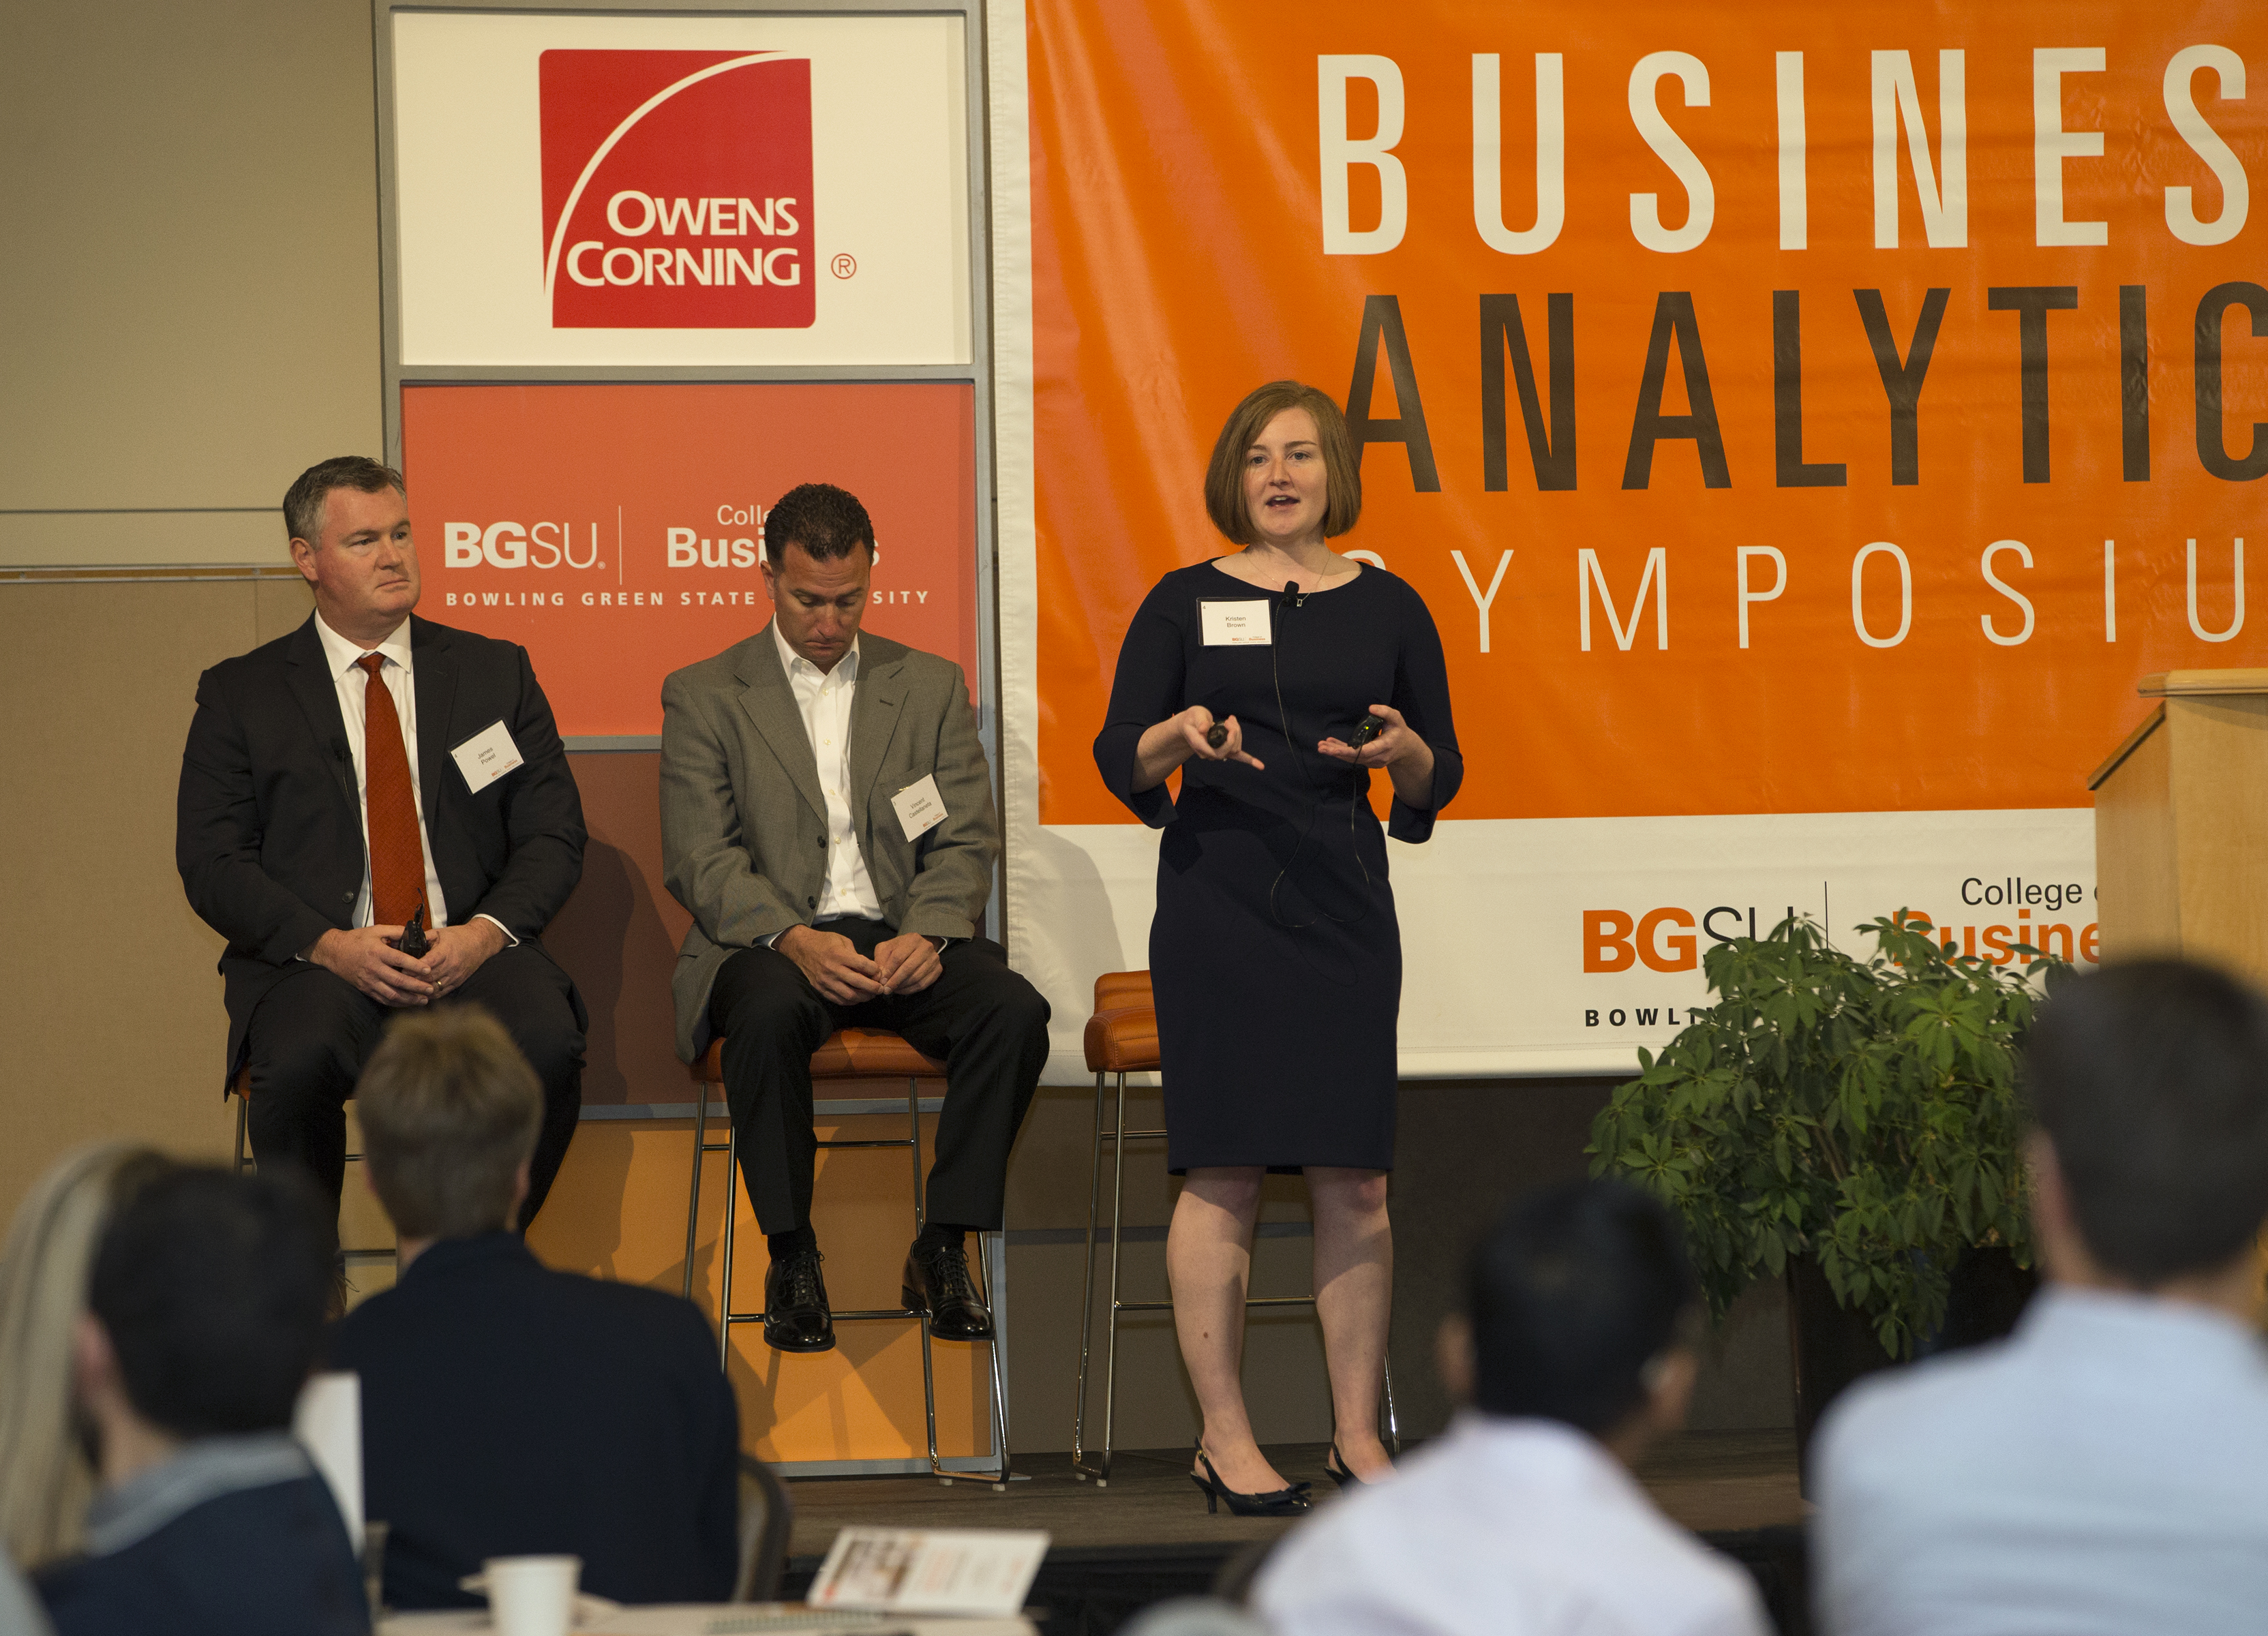 BGSU College of Business hosts Business Analytics Symposium